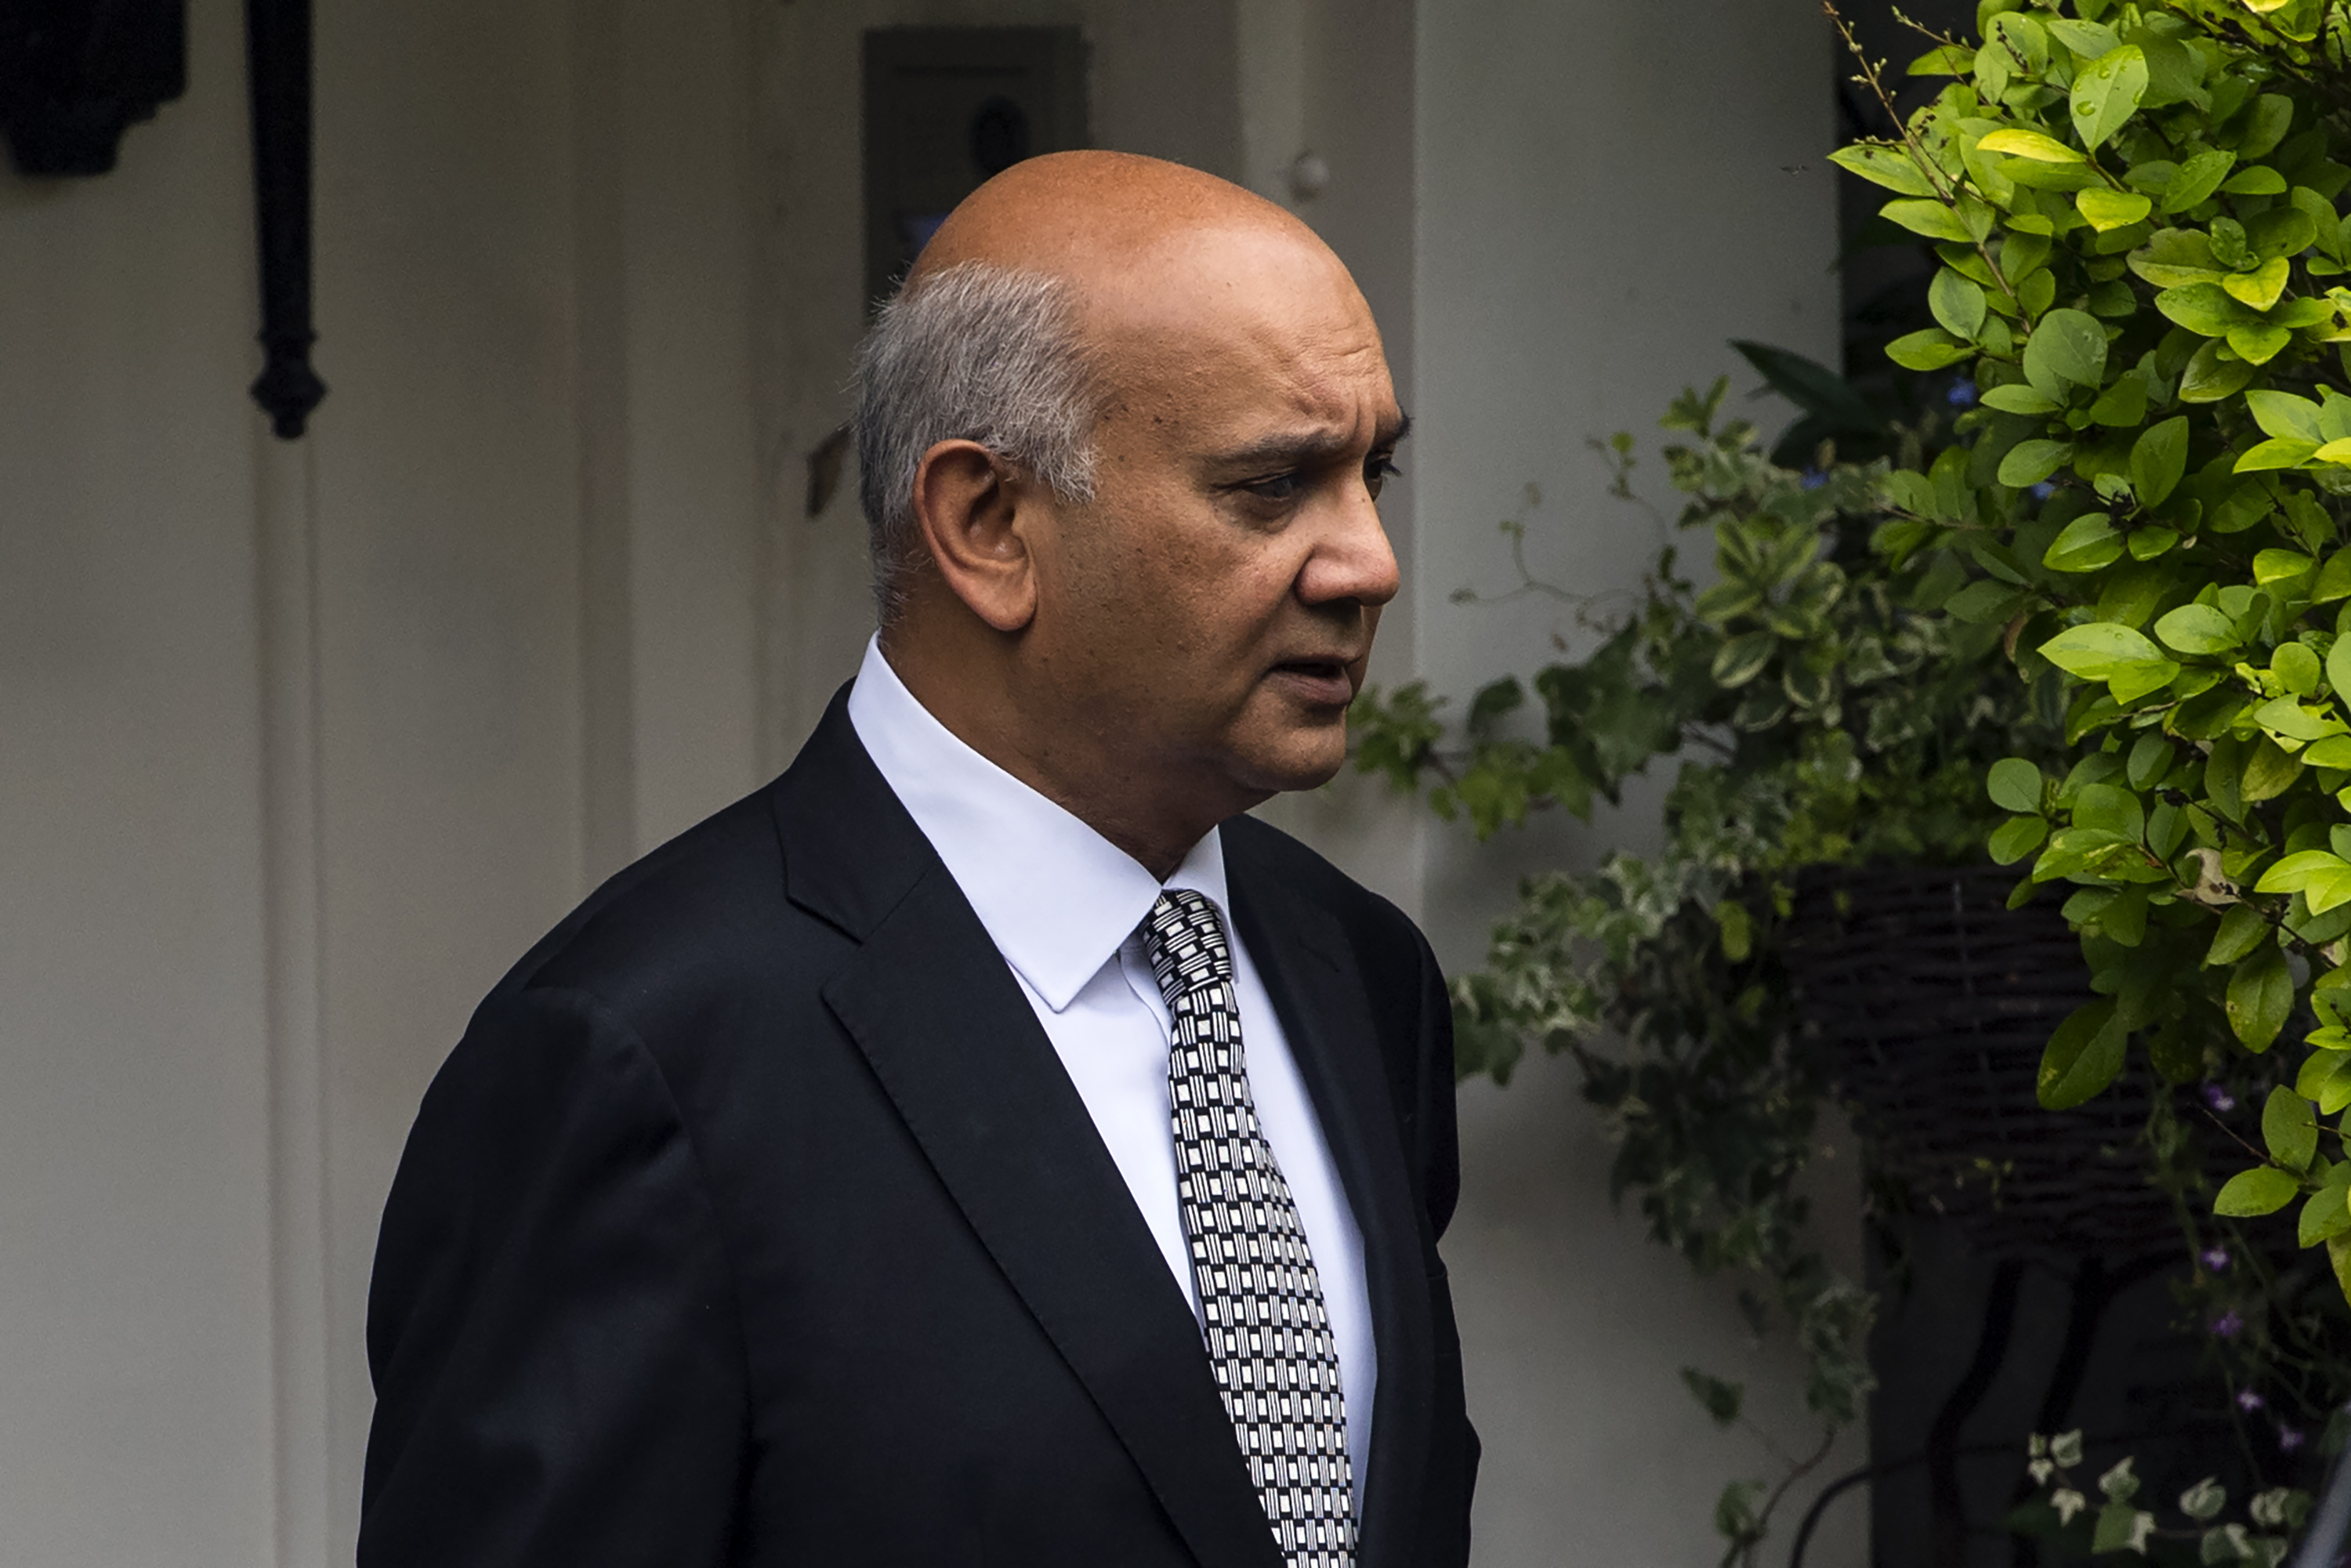 GettyImages 599453852 This Is The Full Conversation Keith Vaz Had With Those Male Prostitutes